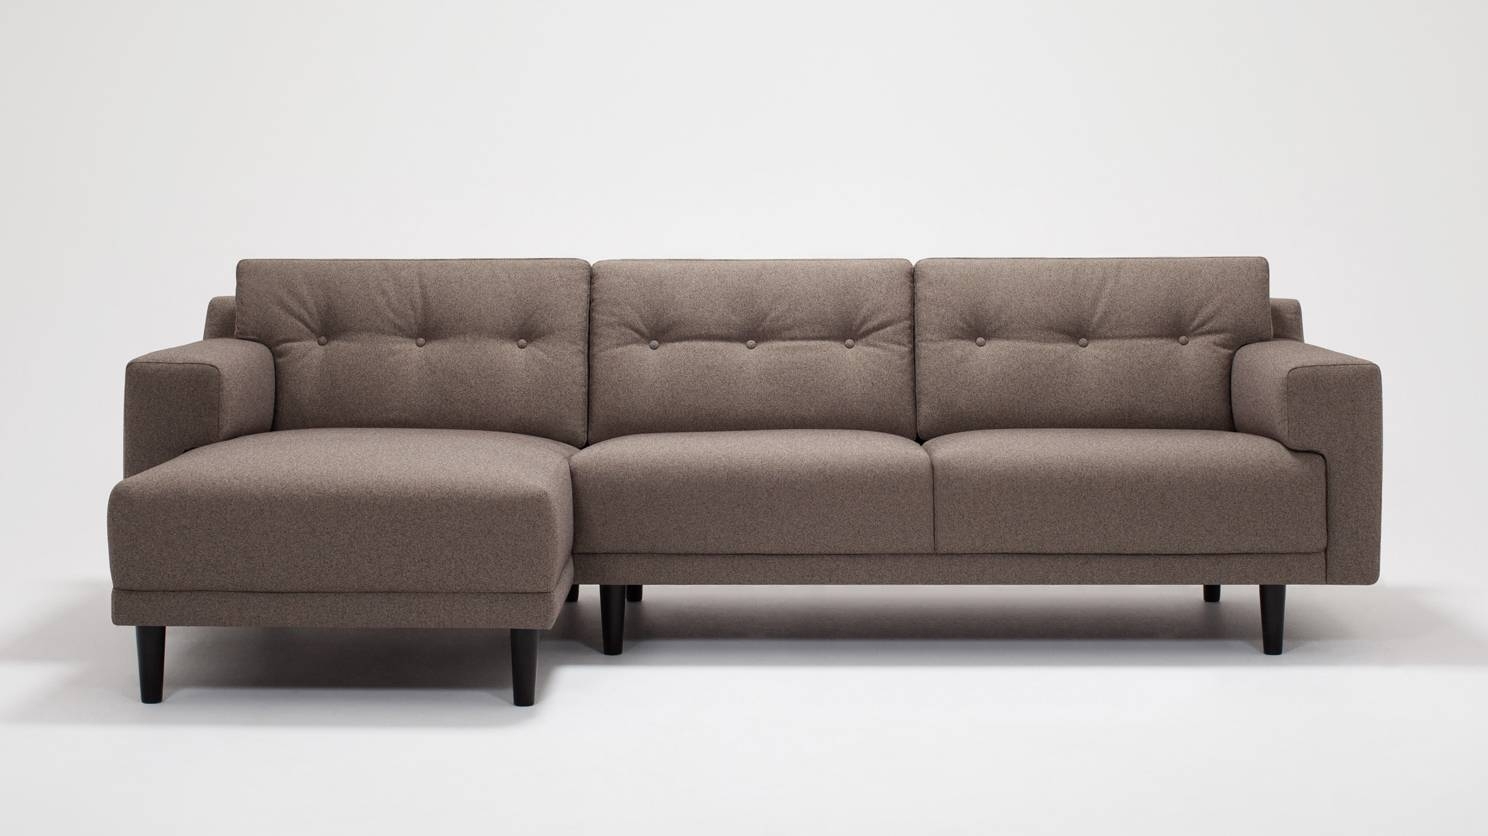 Eq3 | Living > Seating > Sectionals for 10 Piece Sectional Sofa (Image 10 of 30)